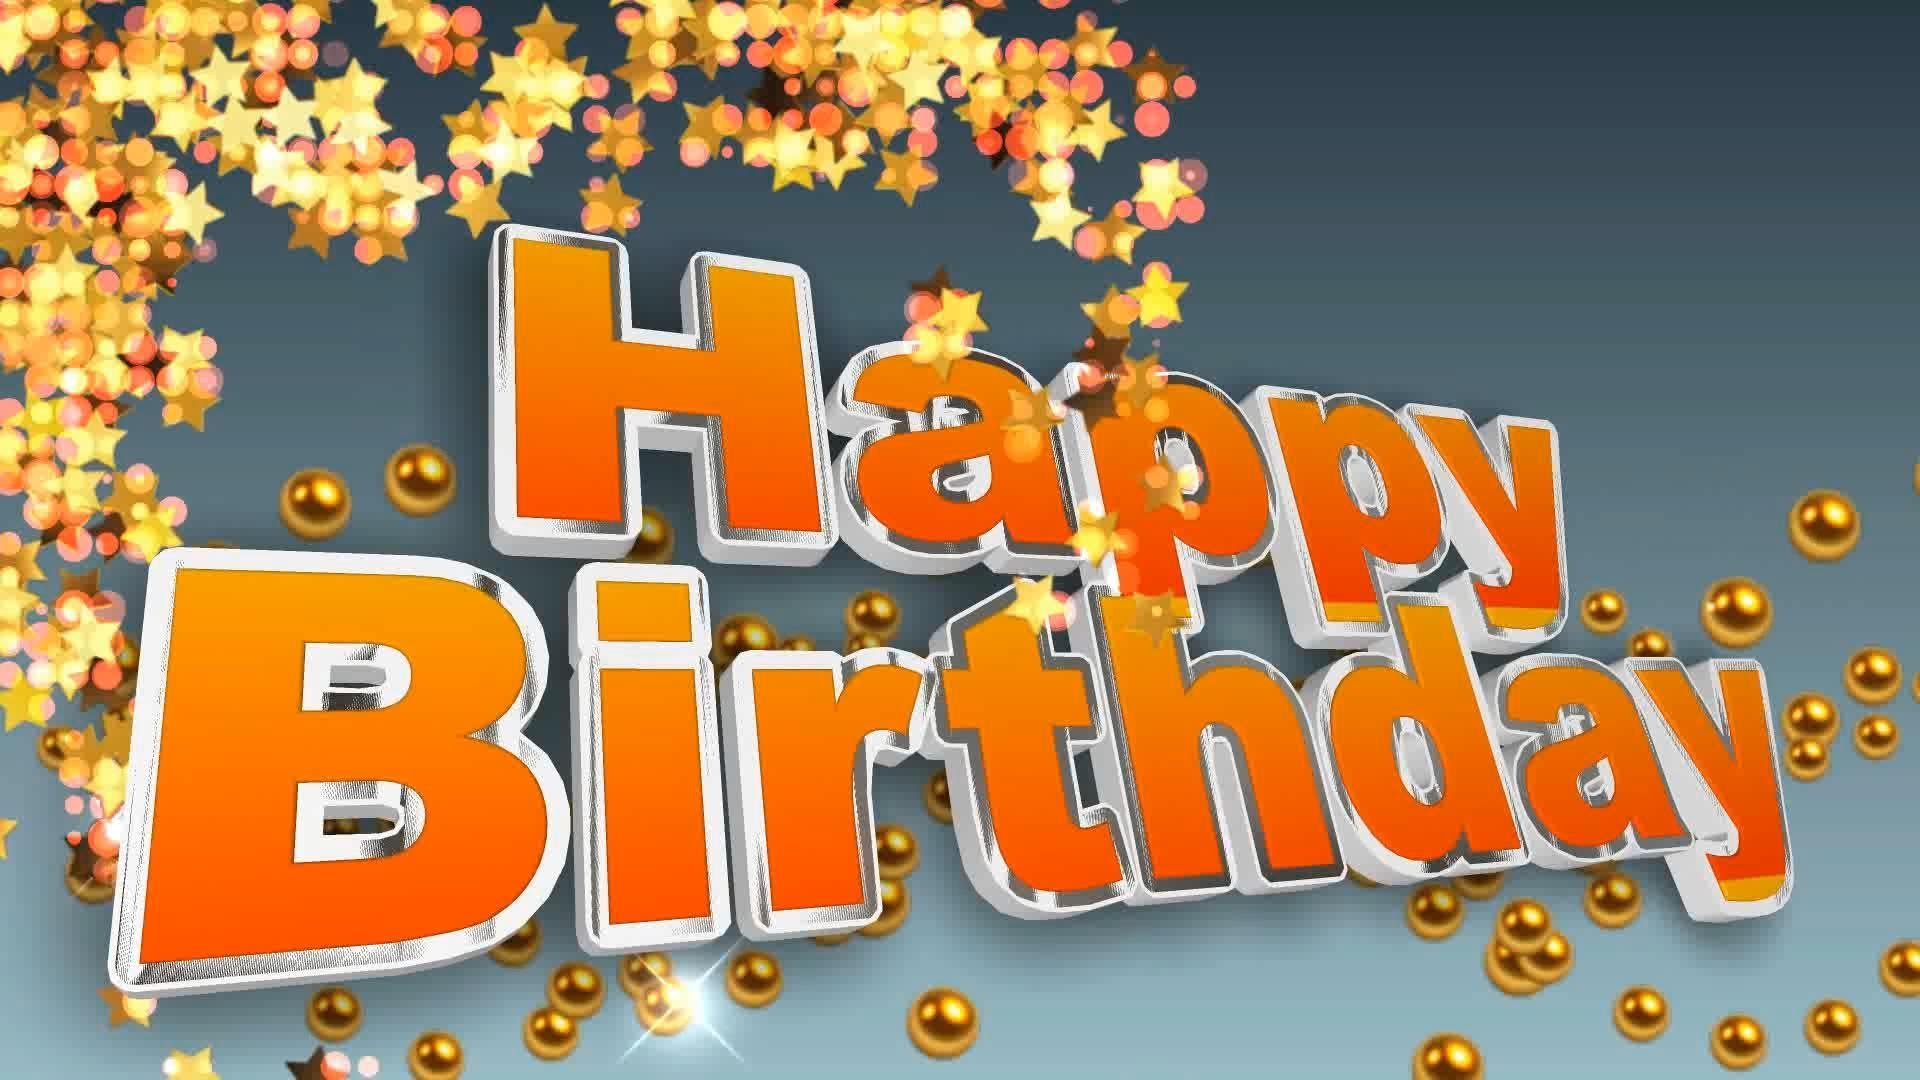 happy birthday images orange - happy birthday images orange - Wallpapers, hd-wallpapers, HD, Free, Birthday, 4k-wallpapers, 4k